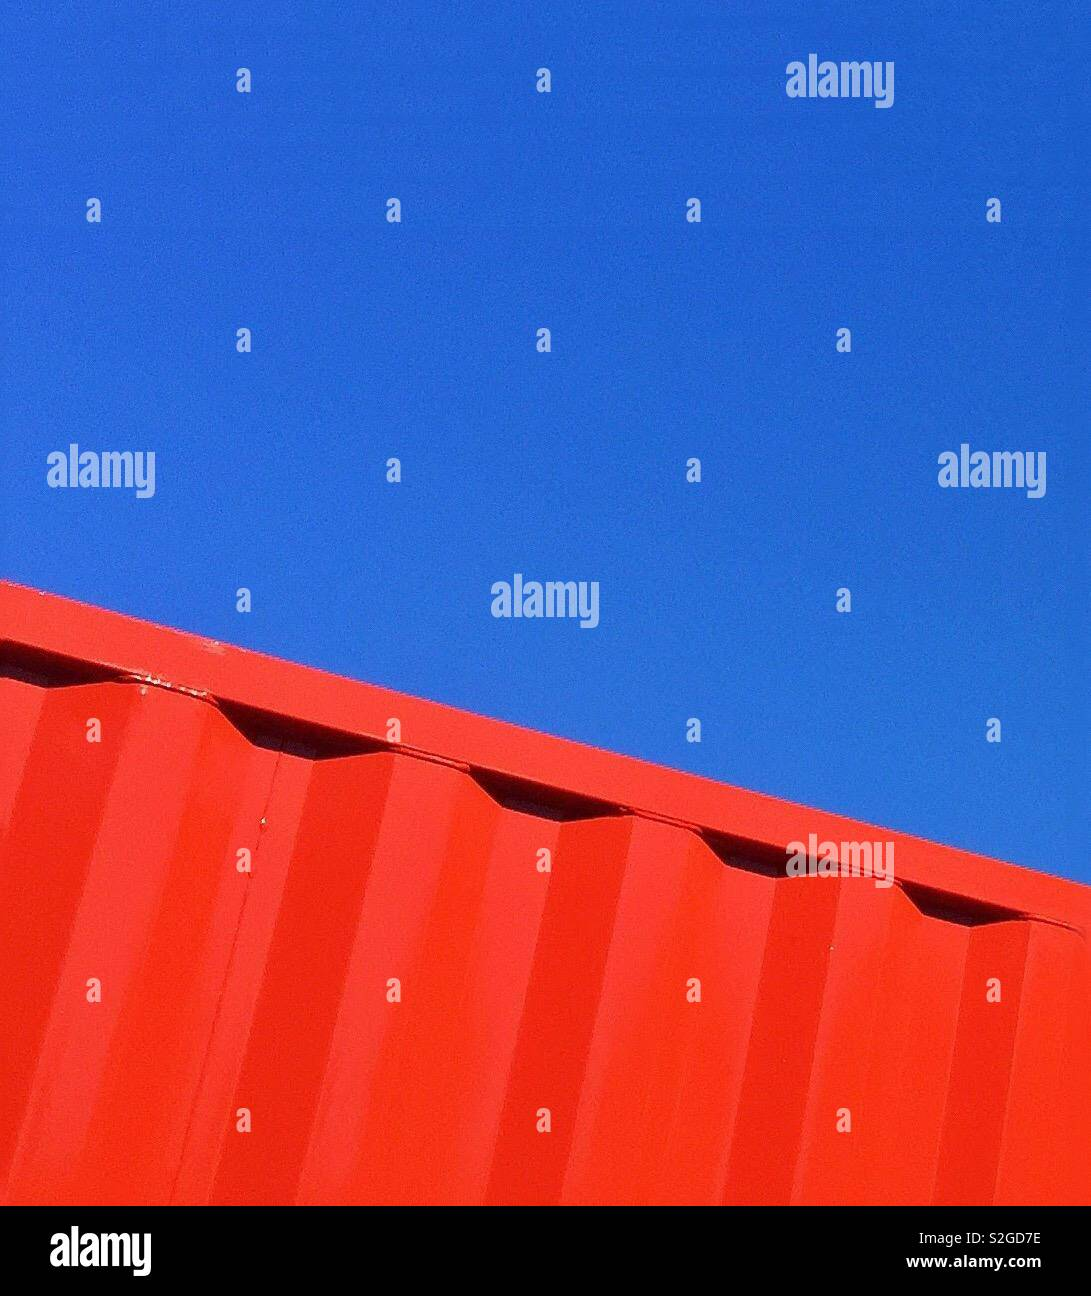 Abstract red and blue - Stock Image